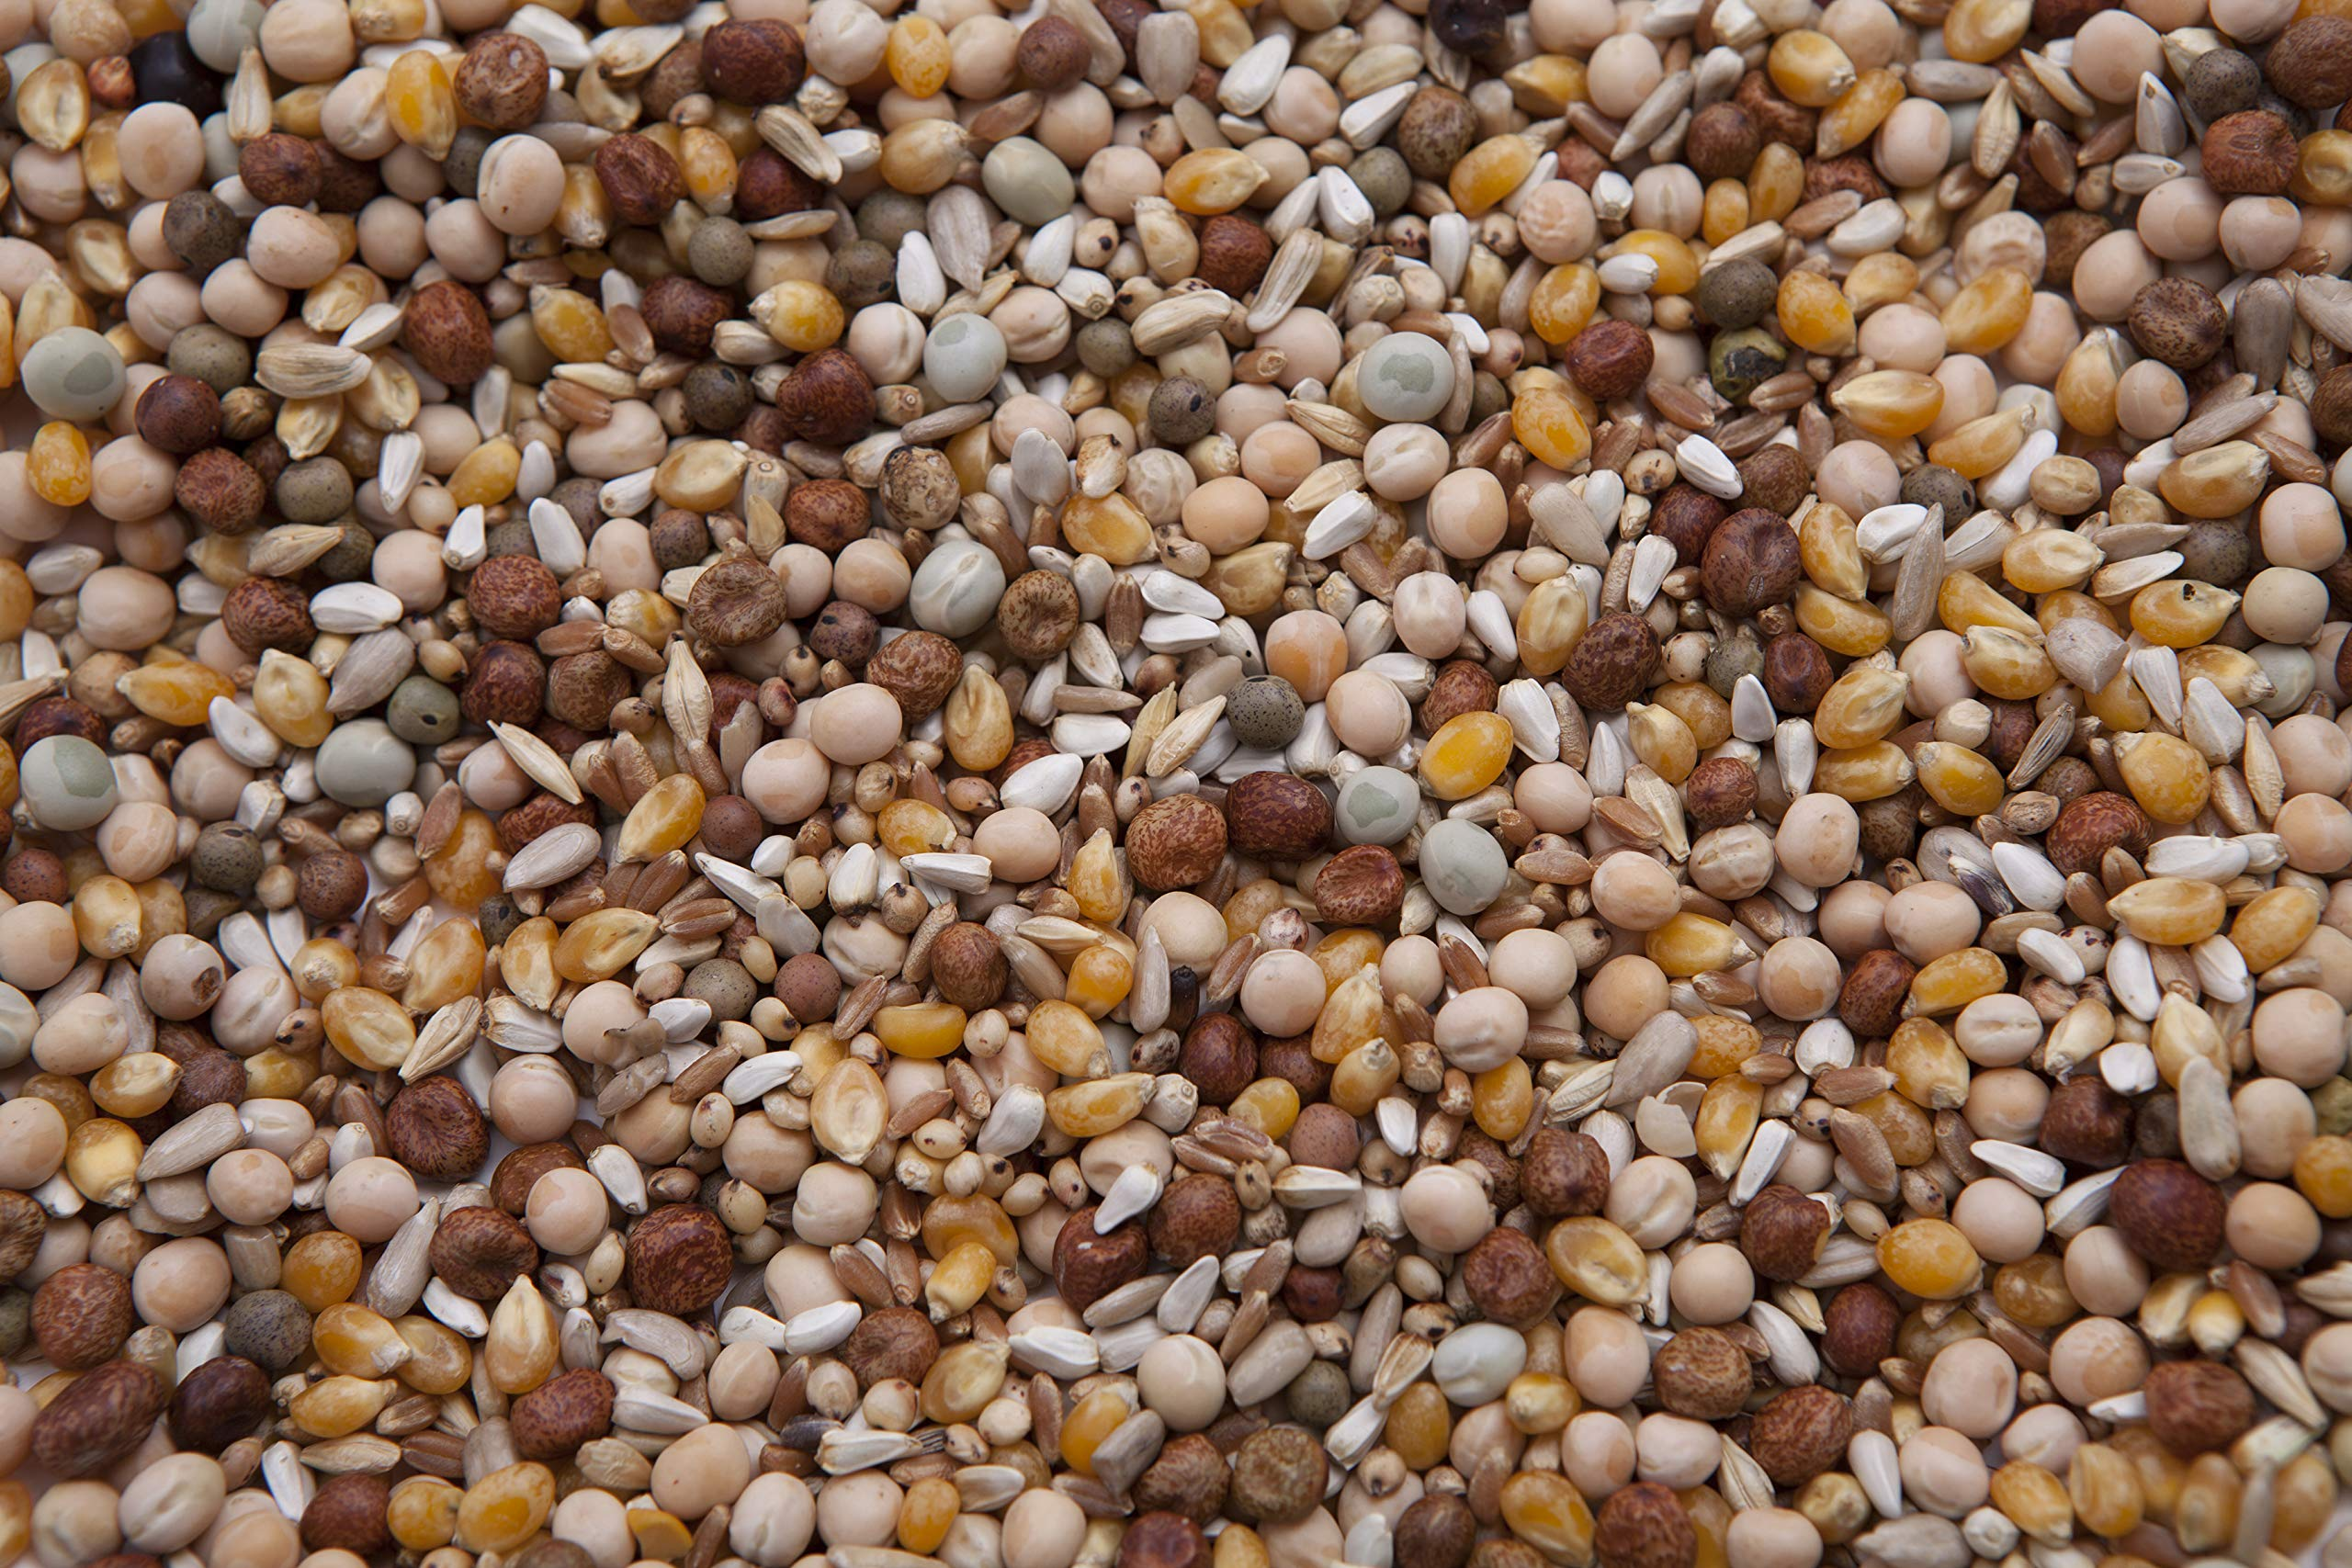 King 45 Pigeon Mix (17%) 20 lbs by Des Moines Pigeon Feed